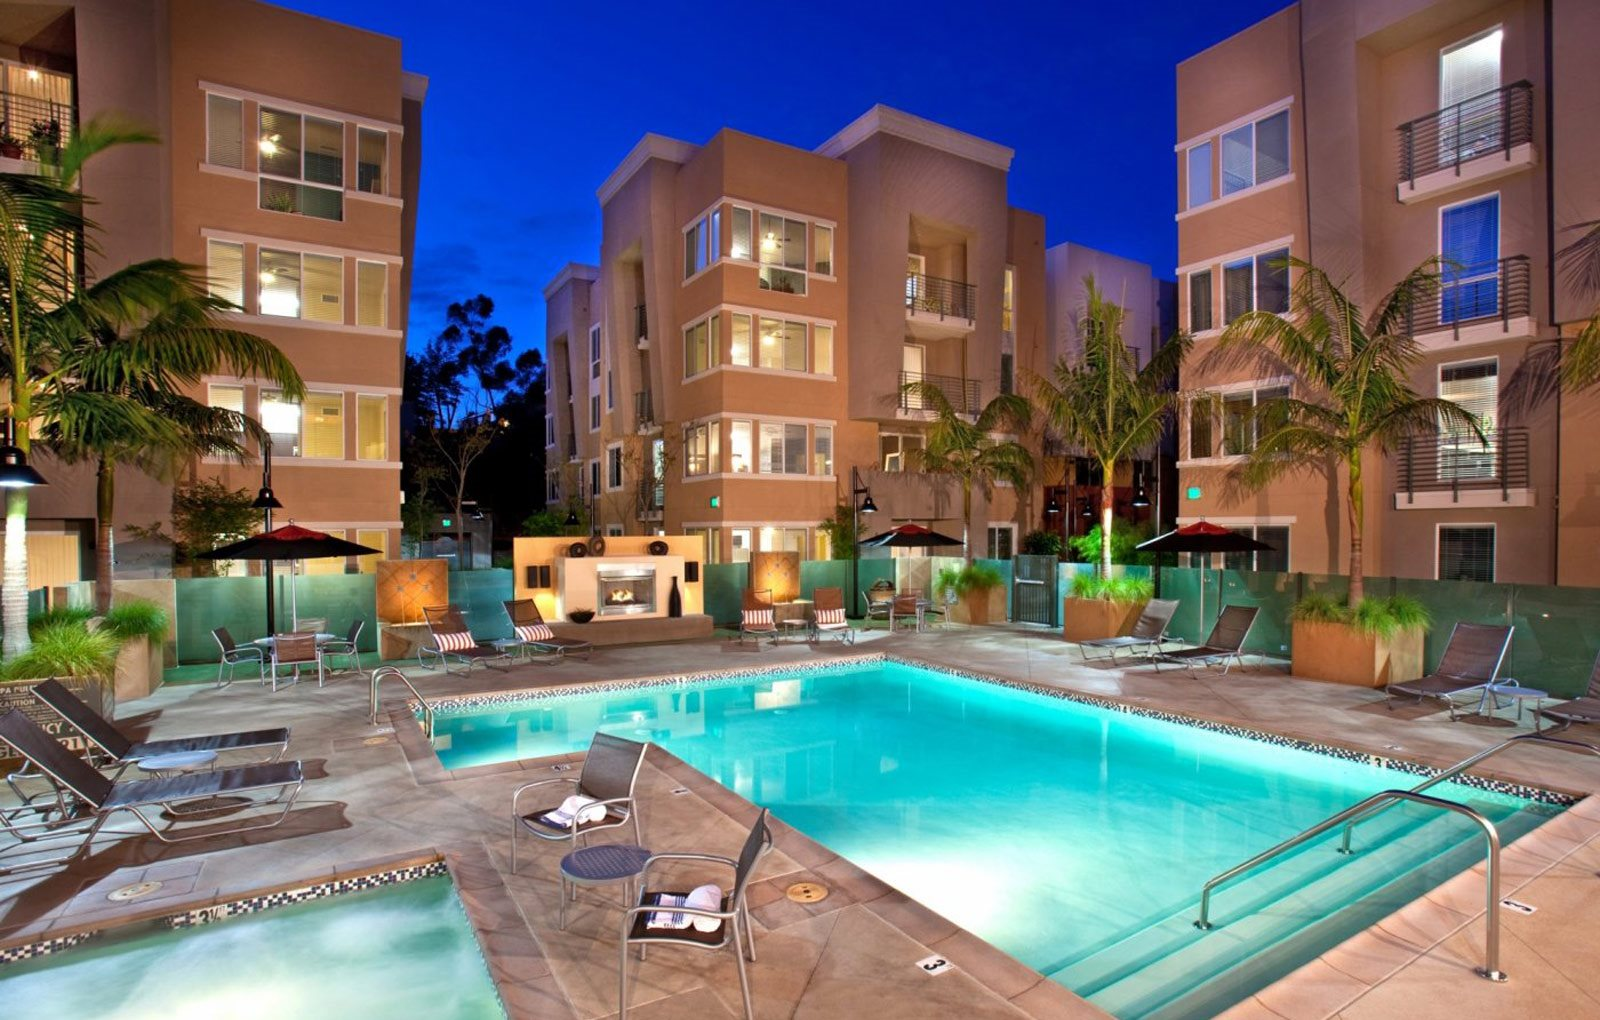 Alterra apartments in la mesa ca apartments for rent in - Cheap one bedroom apartments in san diego ...